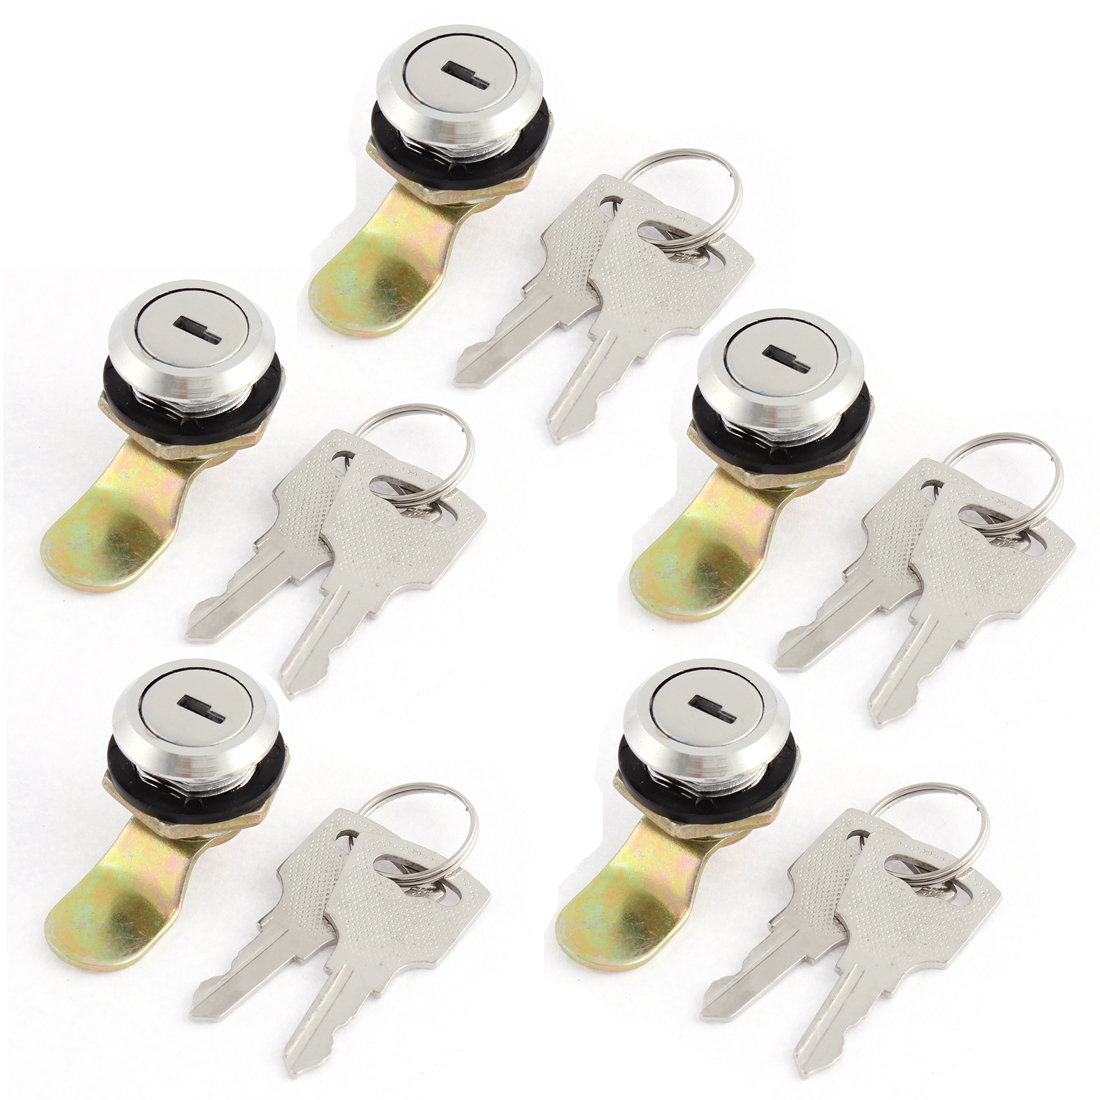 5 Pcs Box File Cabinet Drawer Cylinder Cam Locks